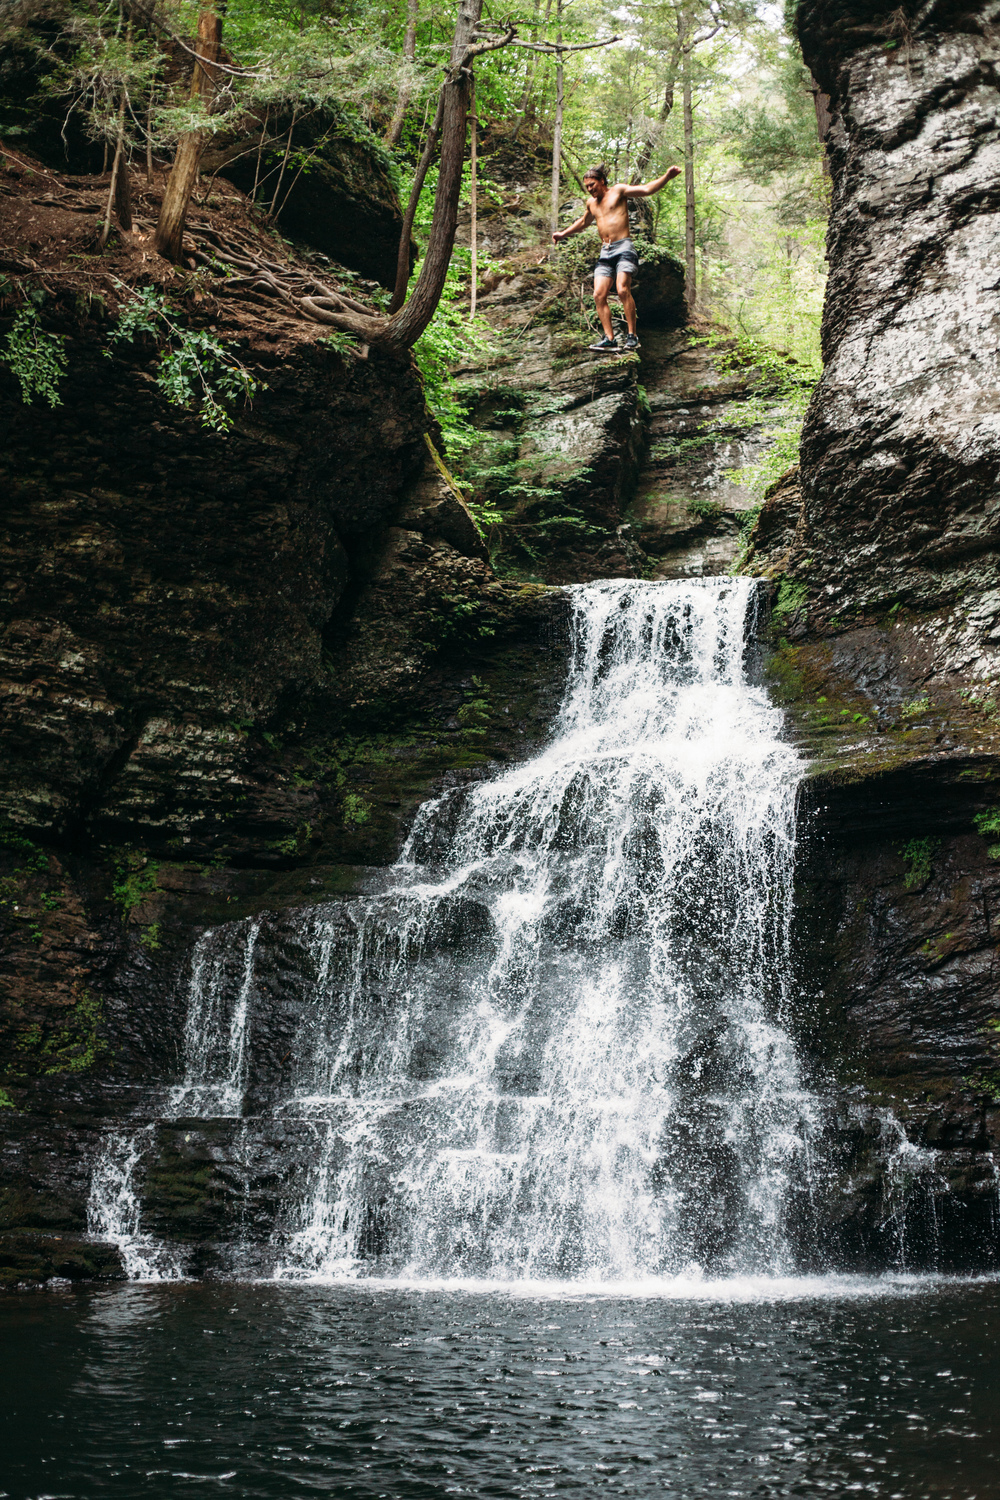 A cool, refreshing cliff dive off of a waterfall in the Delaware Water Gap of Pennsylvania.